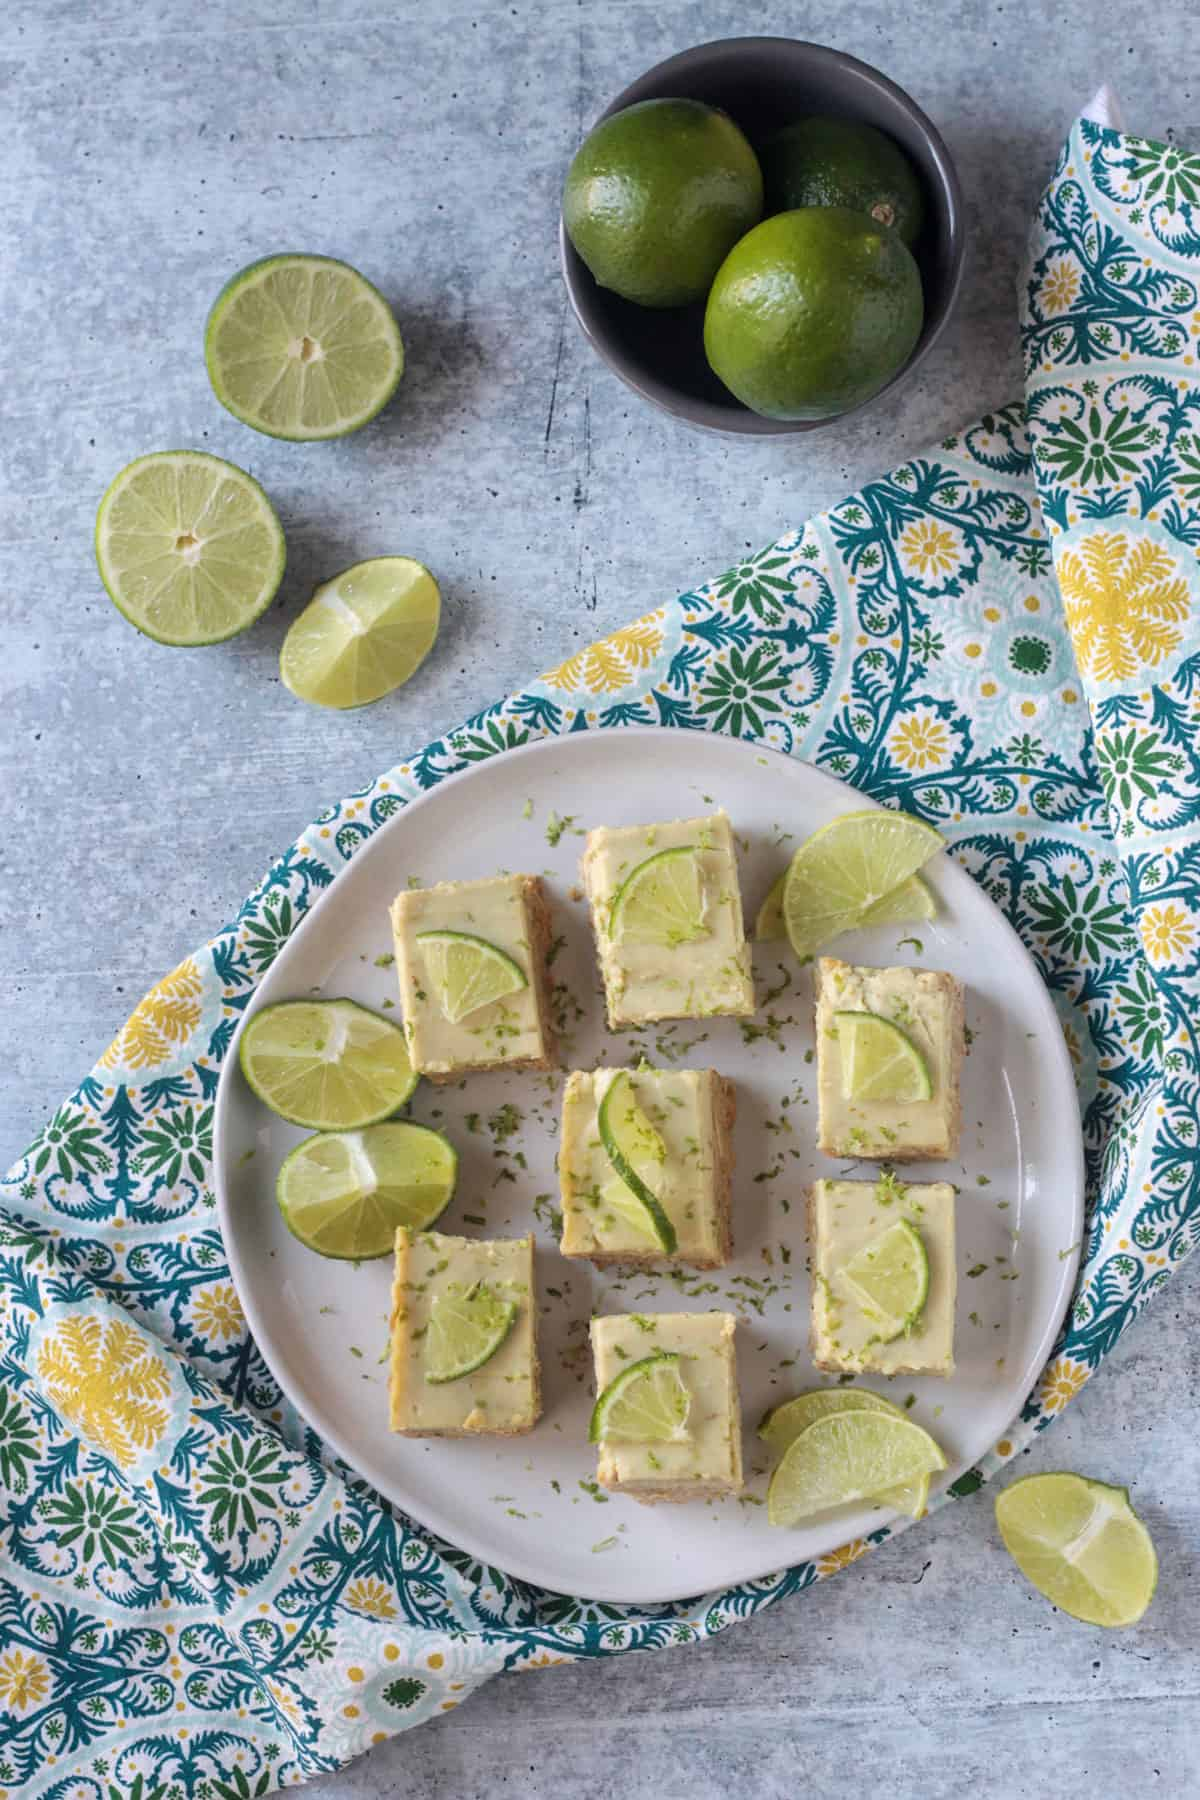 7 vegan lime bars on a plate topped with lime zest.